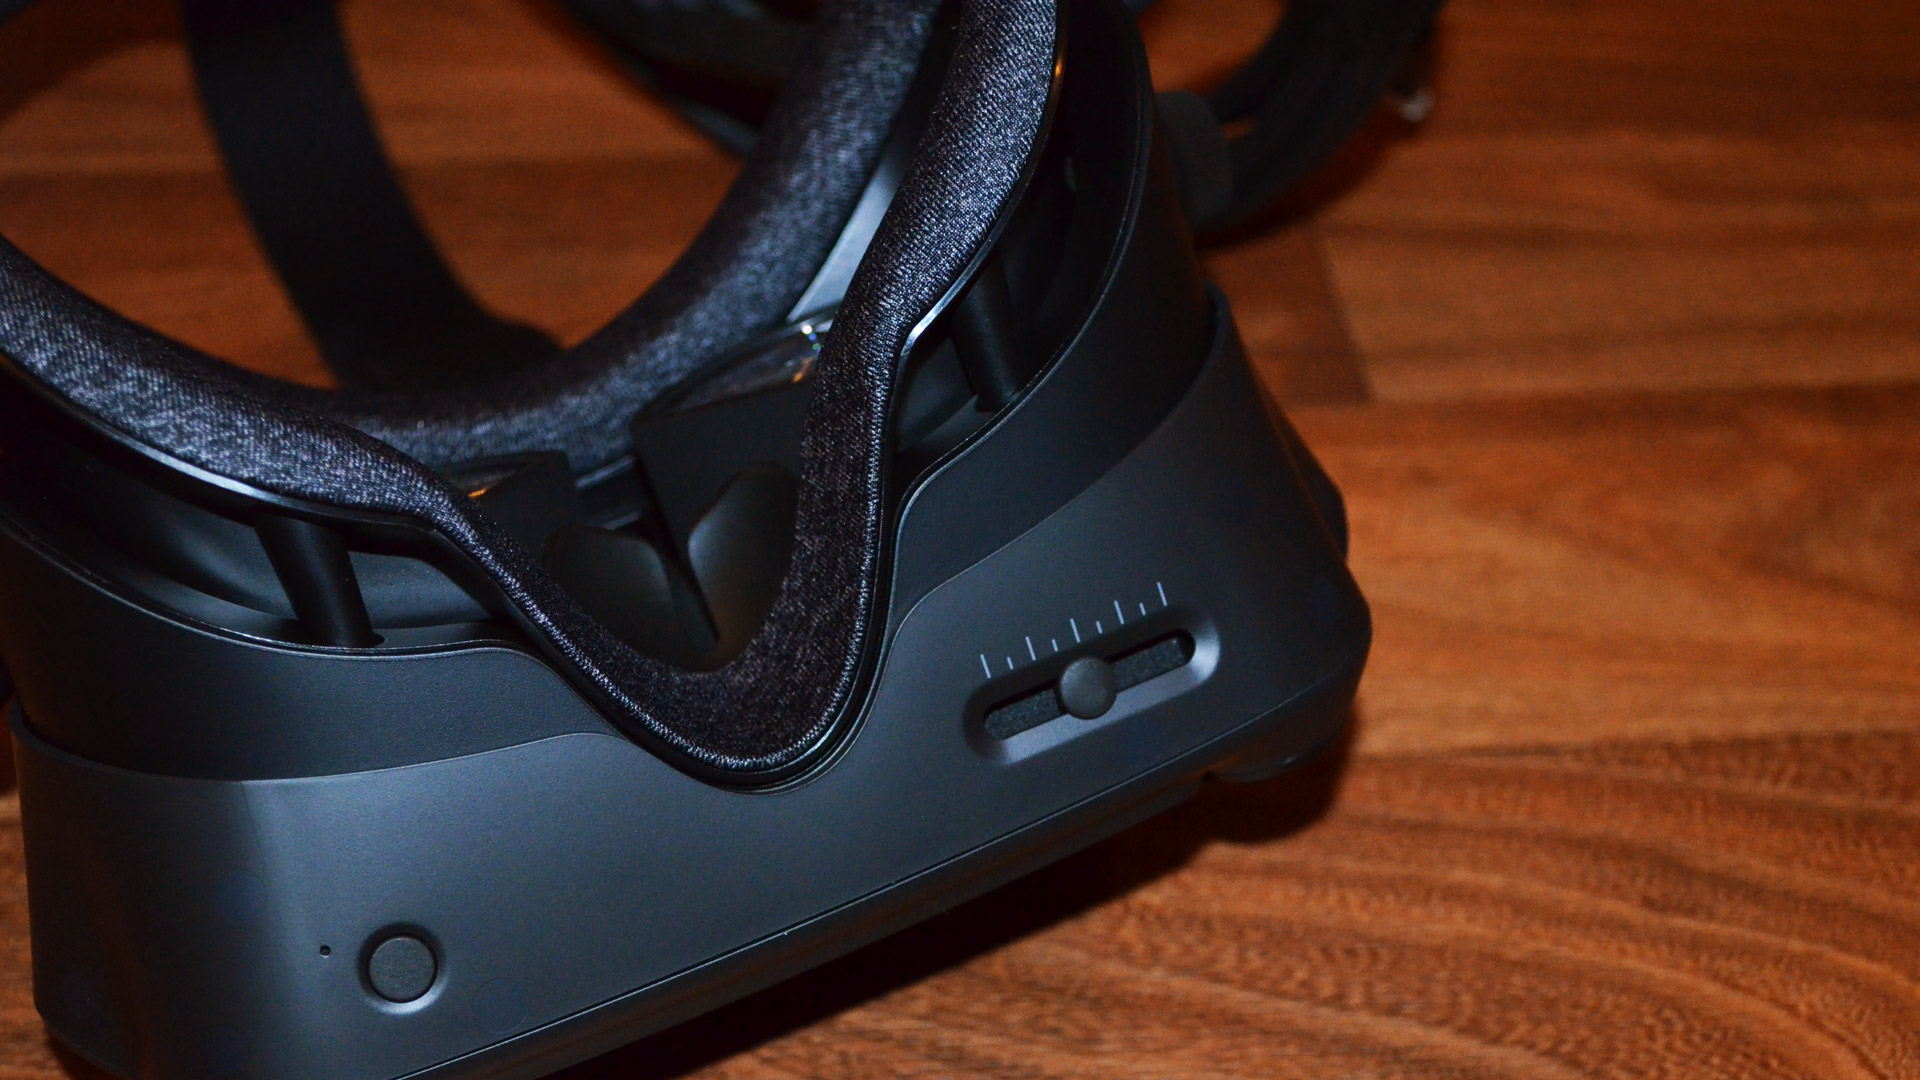 Preview: Valve Index is the DSLR to the Oculus Rift S Point